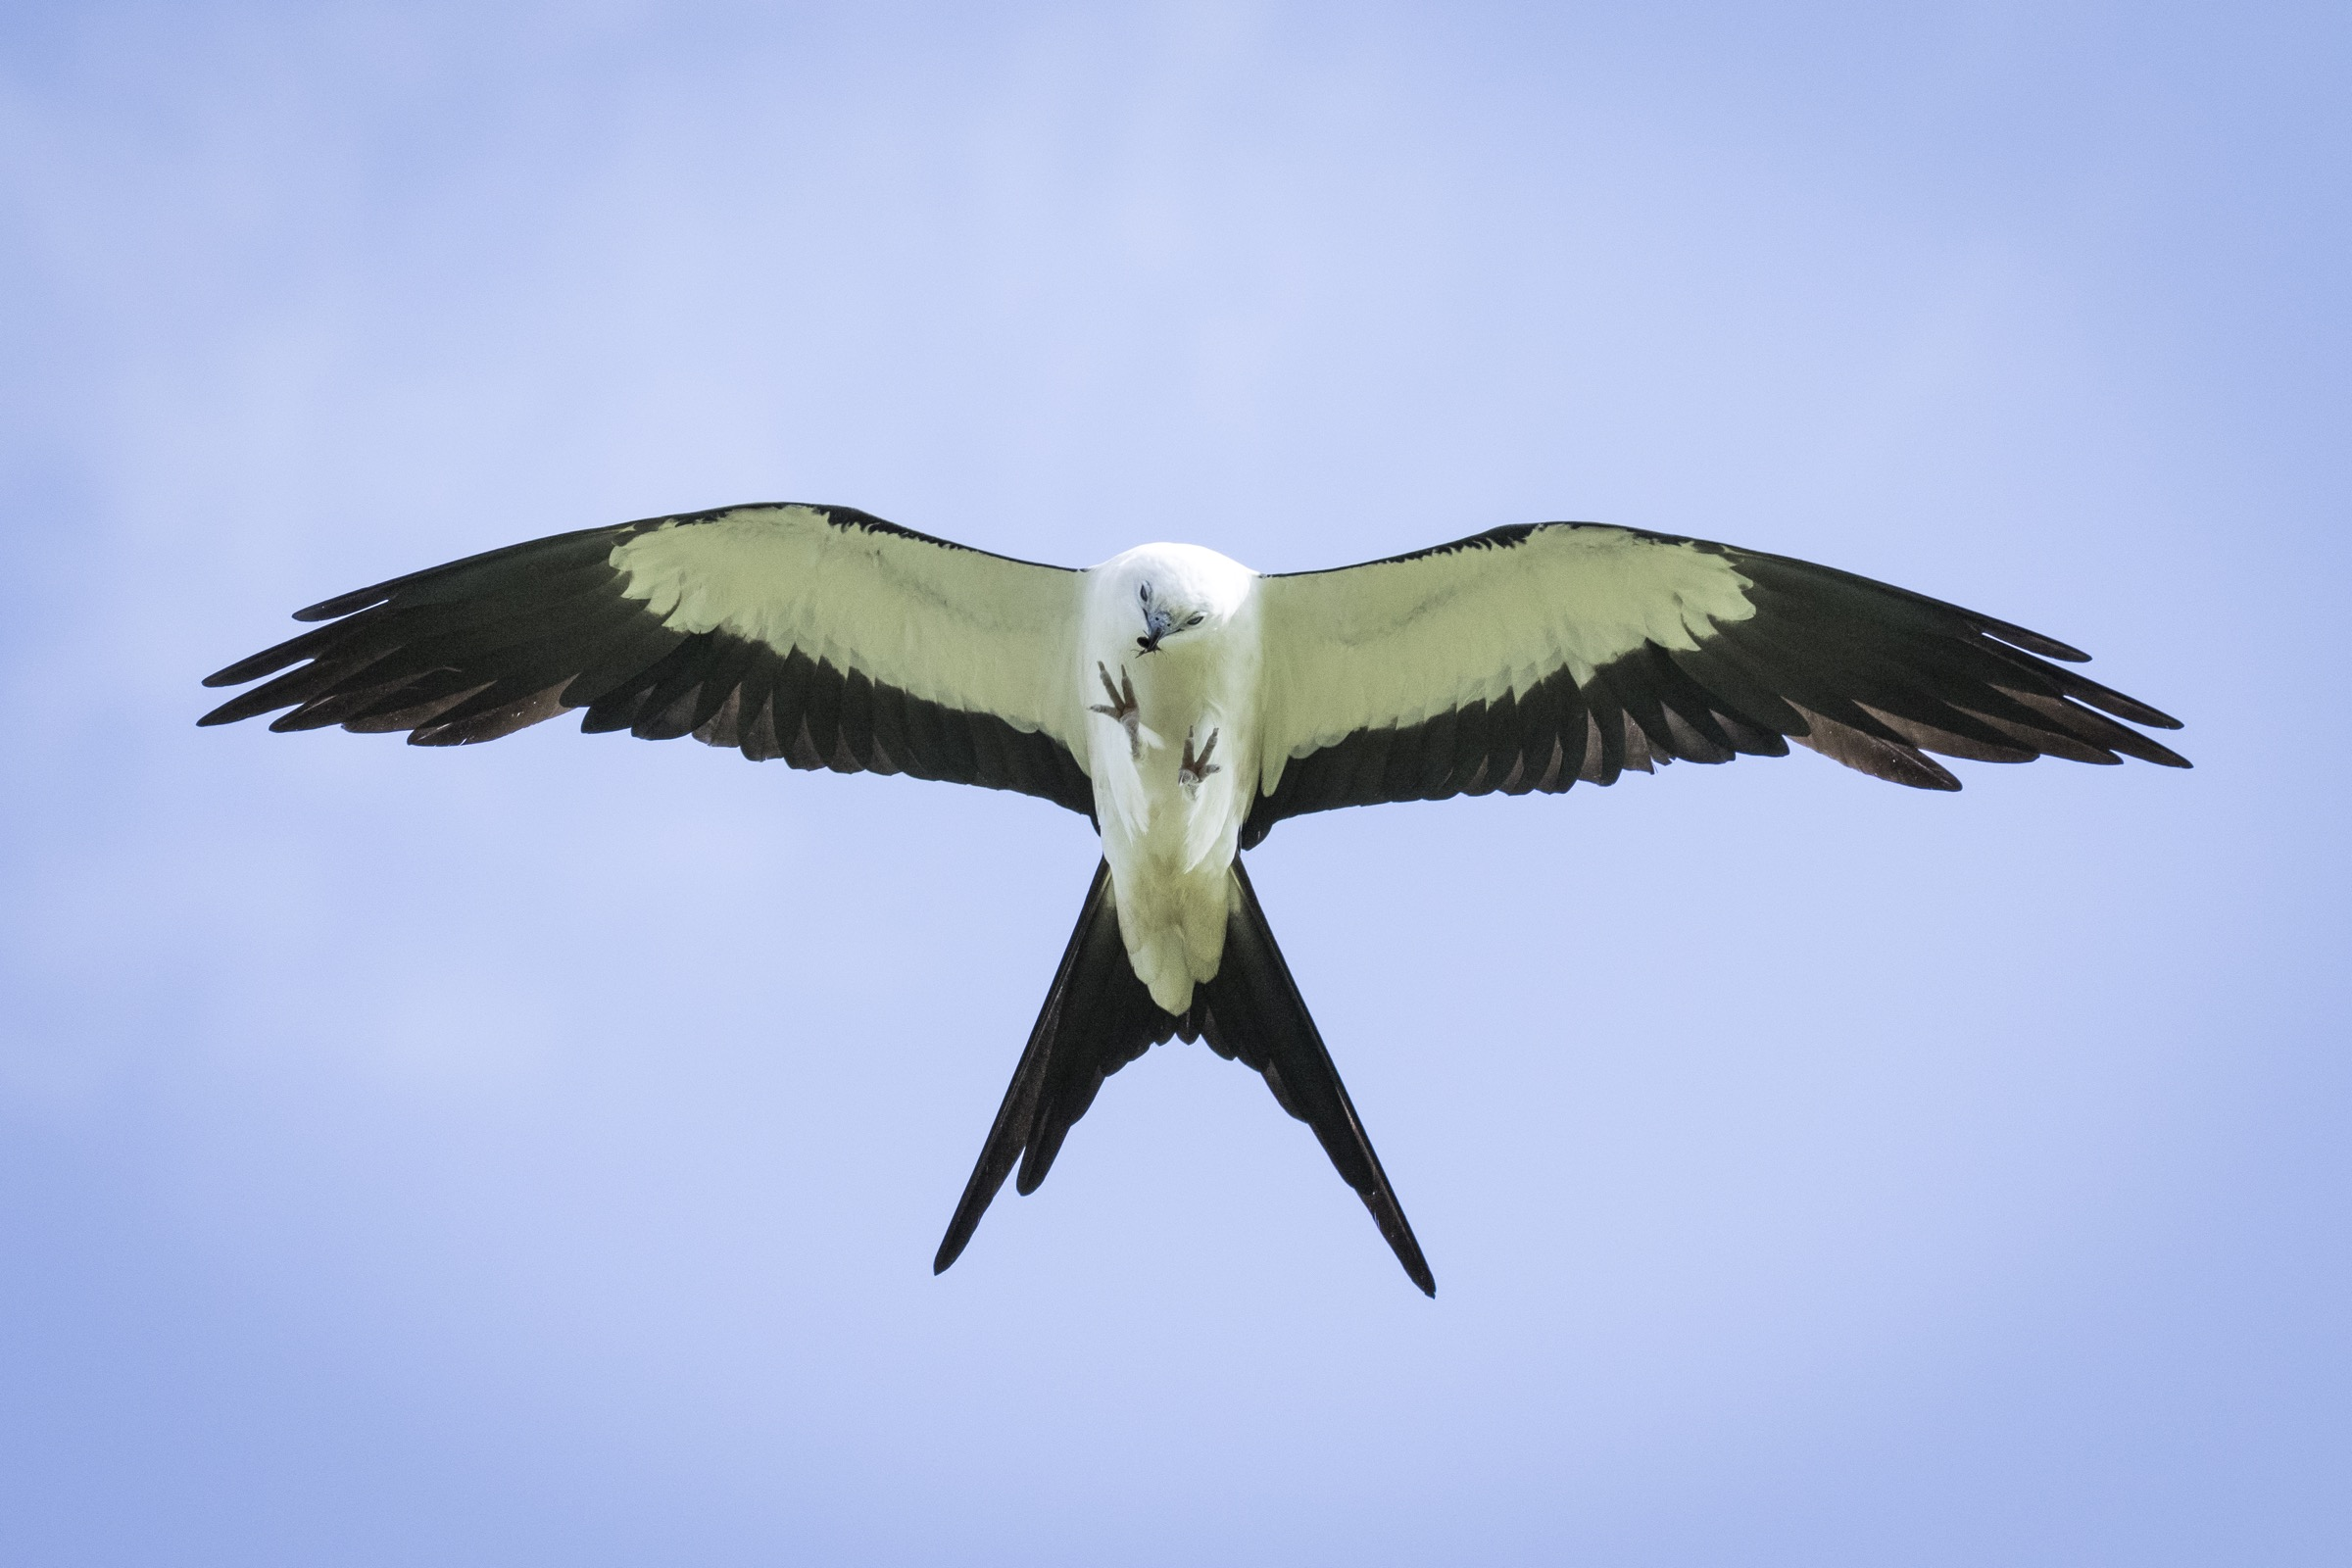 Swallow-tailed kites are spectacular flyers, capable of eating and drinking in flight, and rarely beating their wings over the course of the day.